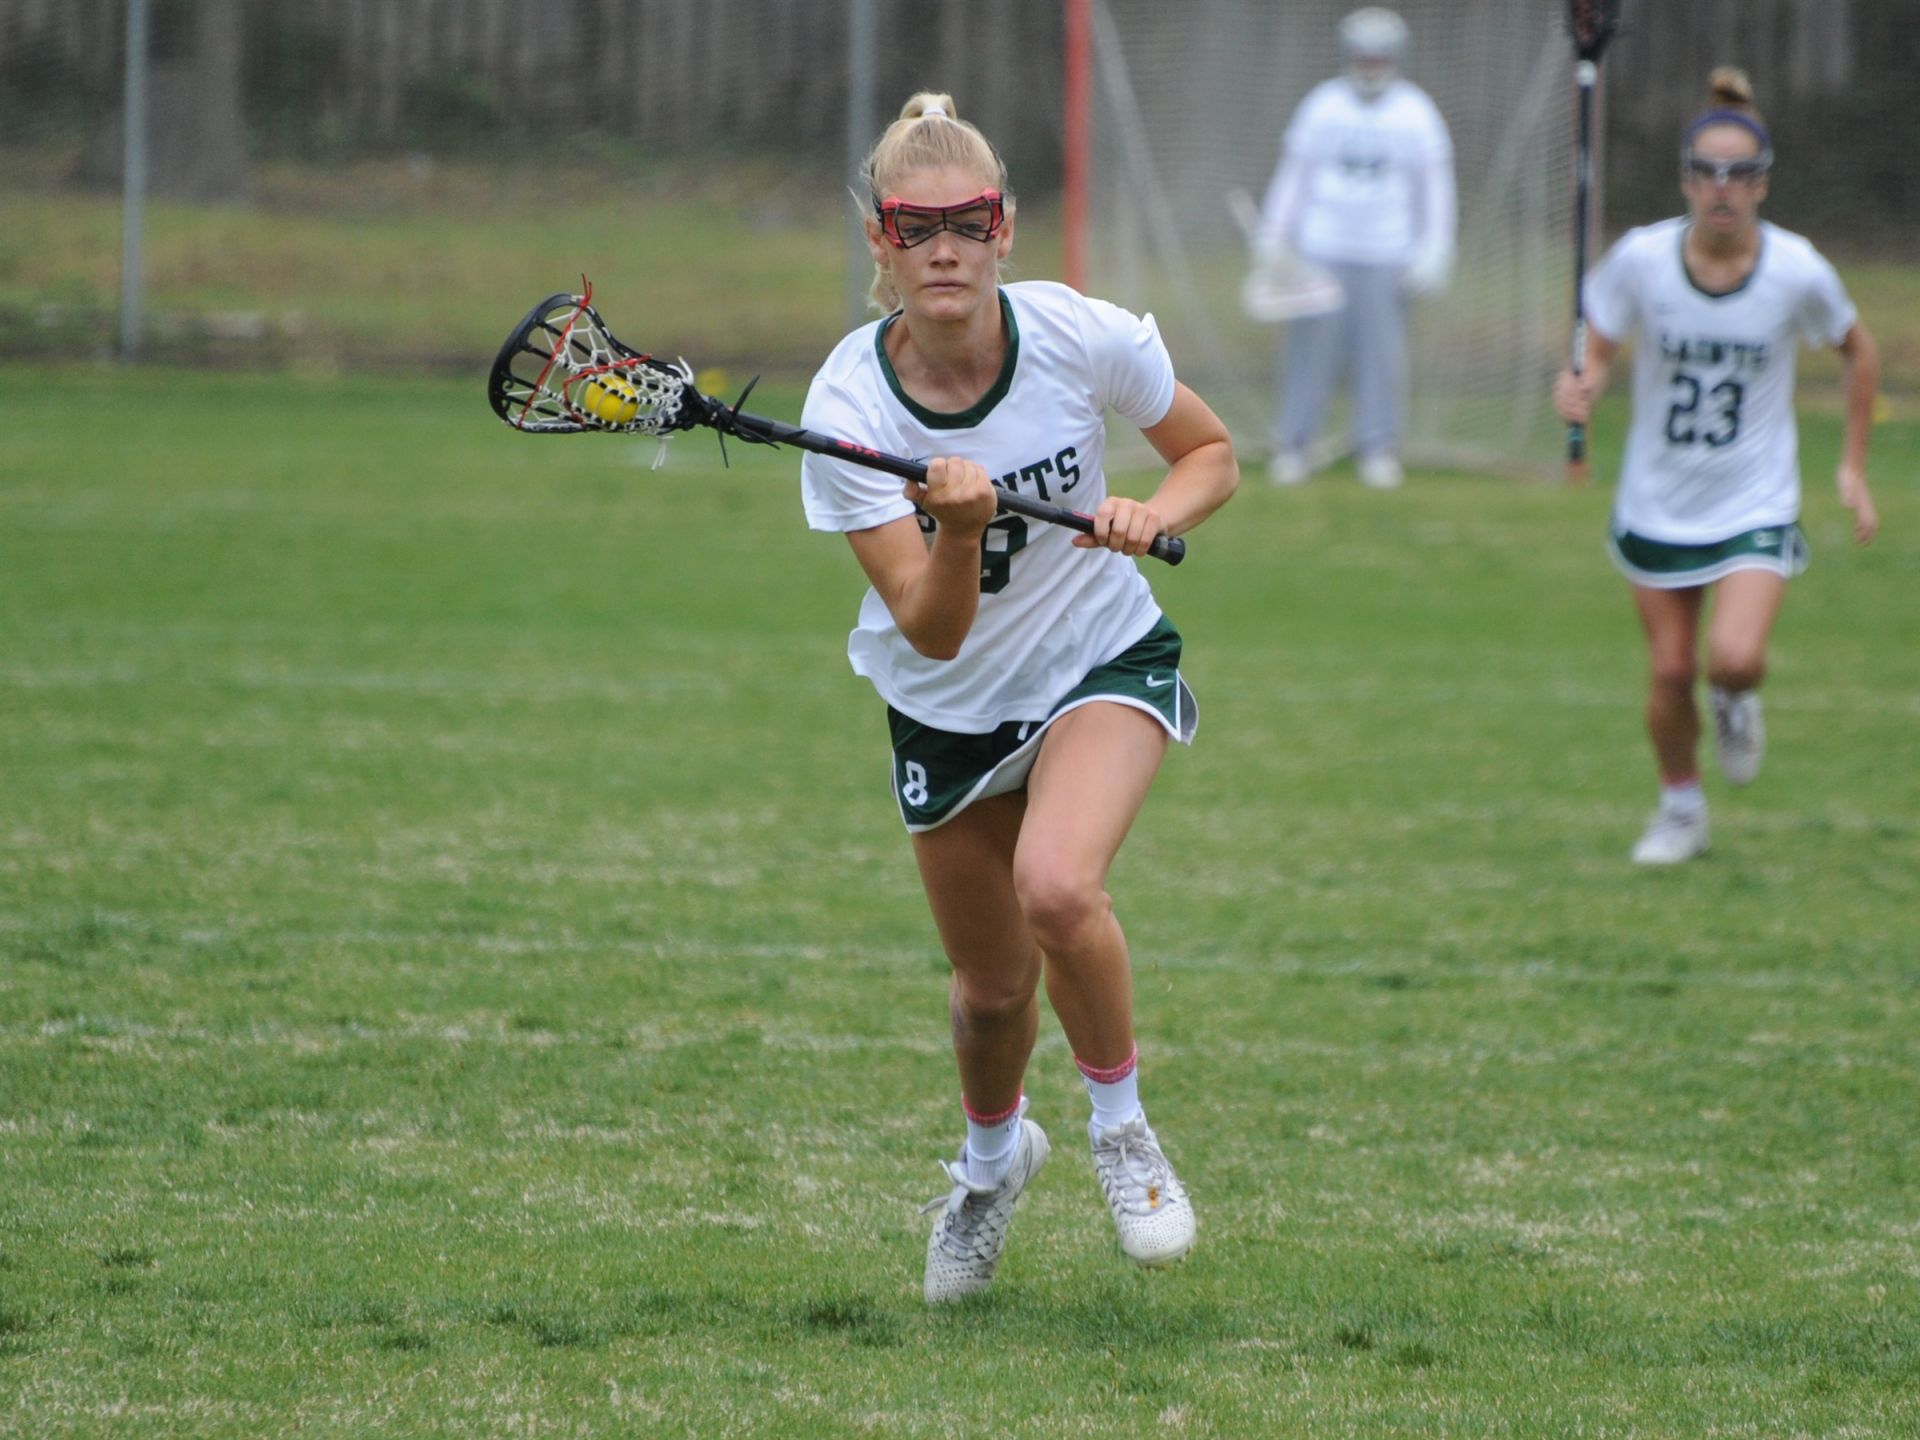 ANNA PUSEY | LACROSSE | COLLEGE OF HOLY CROSS